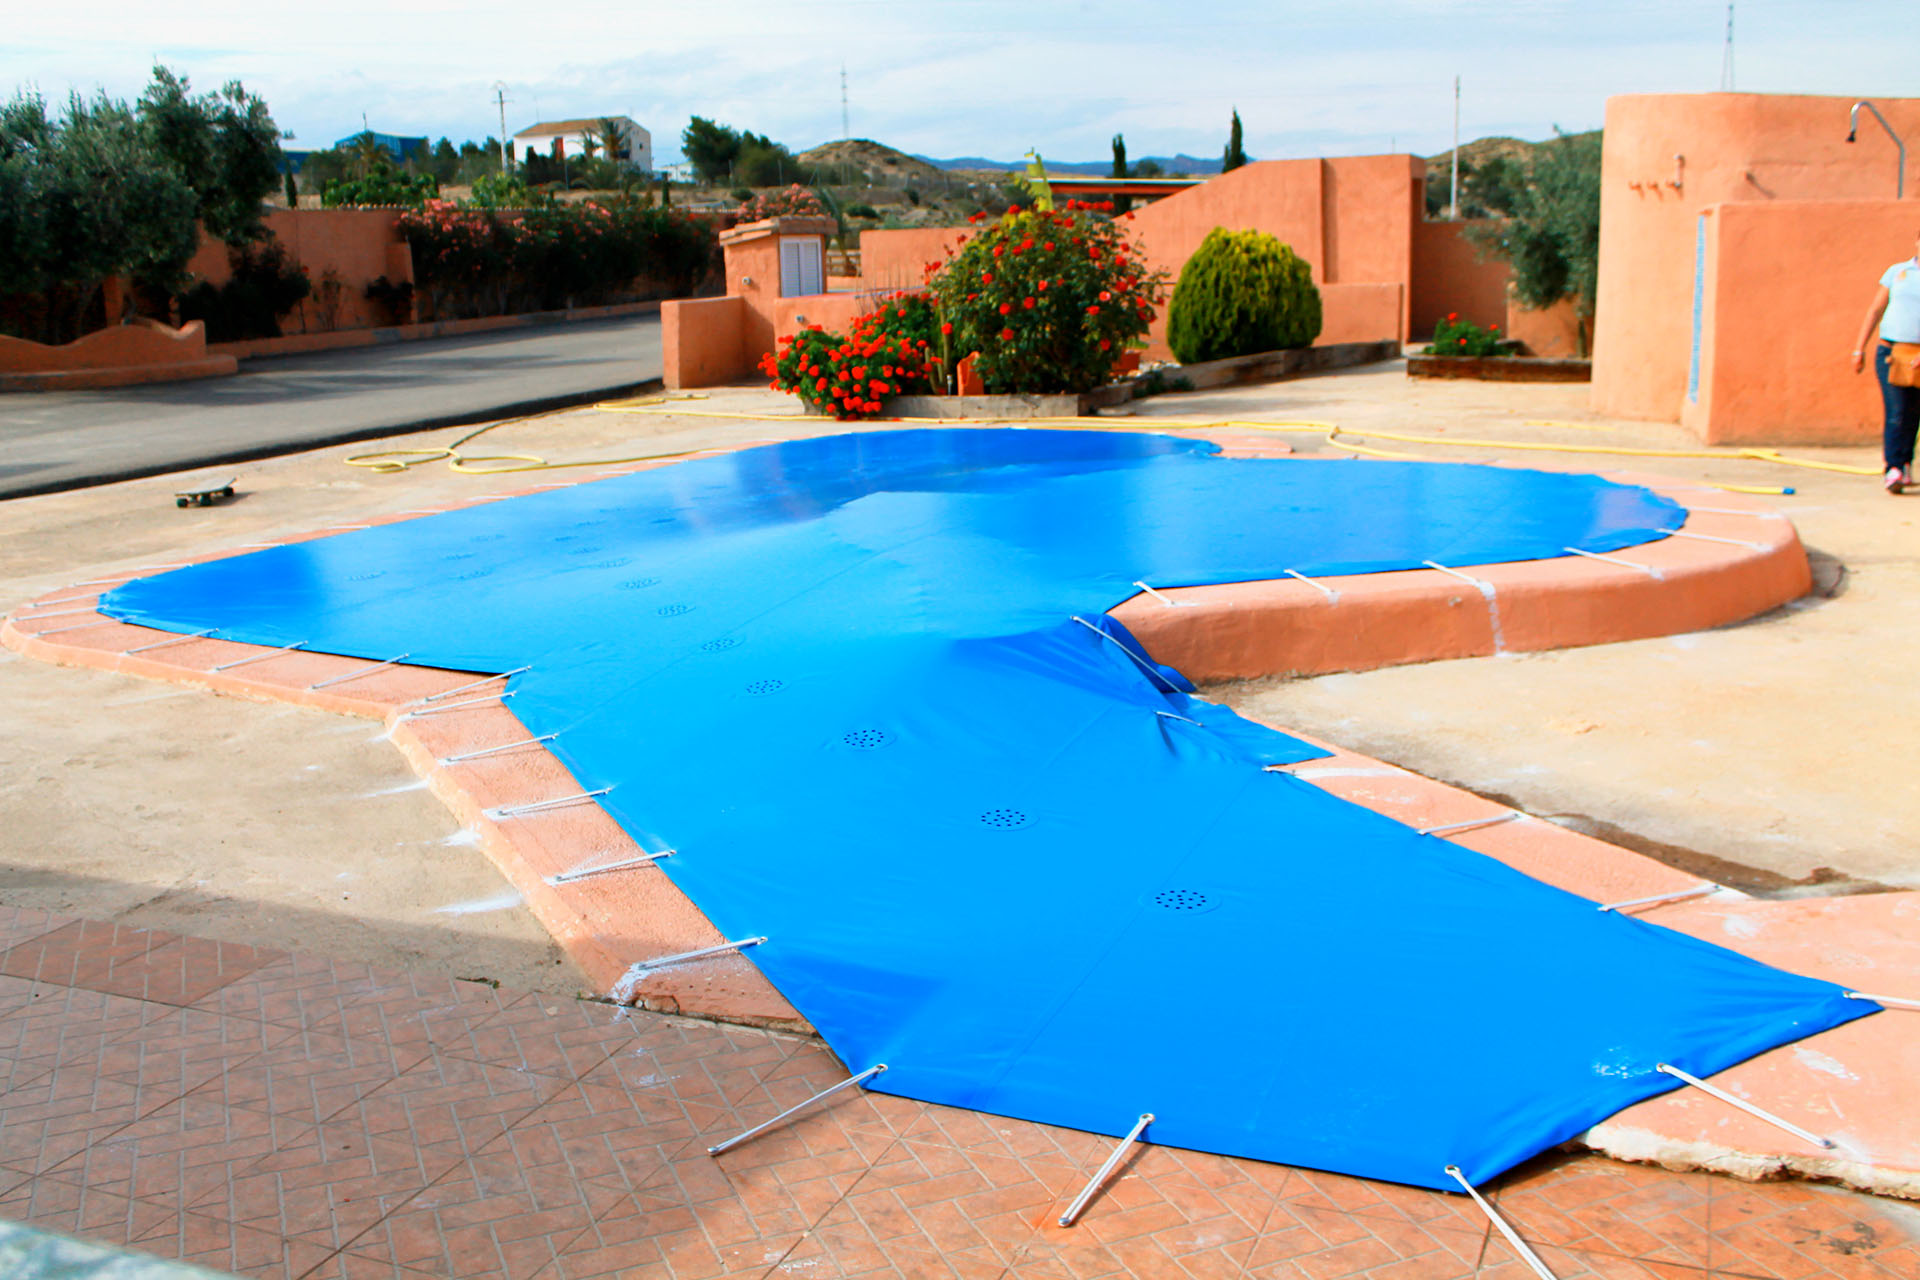 Cobertor Solar Piscina Real Covers Pool Covers Invernal Protection Swimming Pool